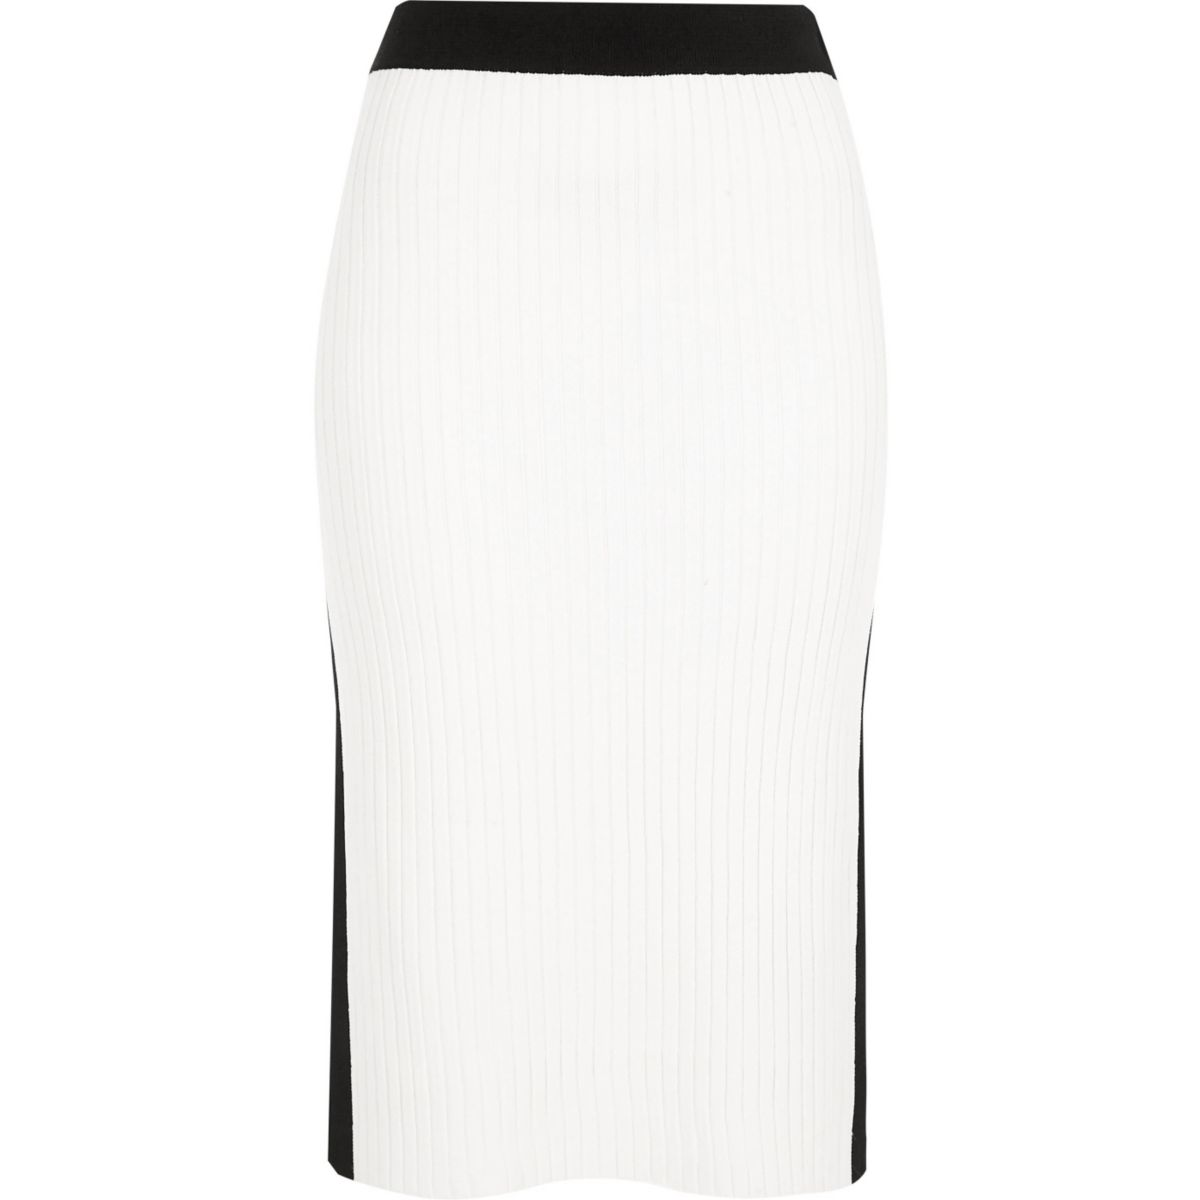 White and black sports midi skirt